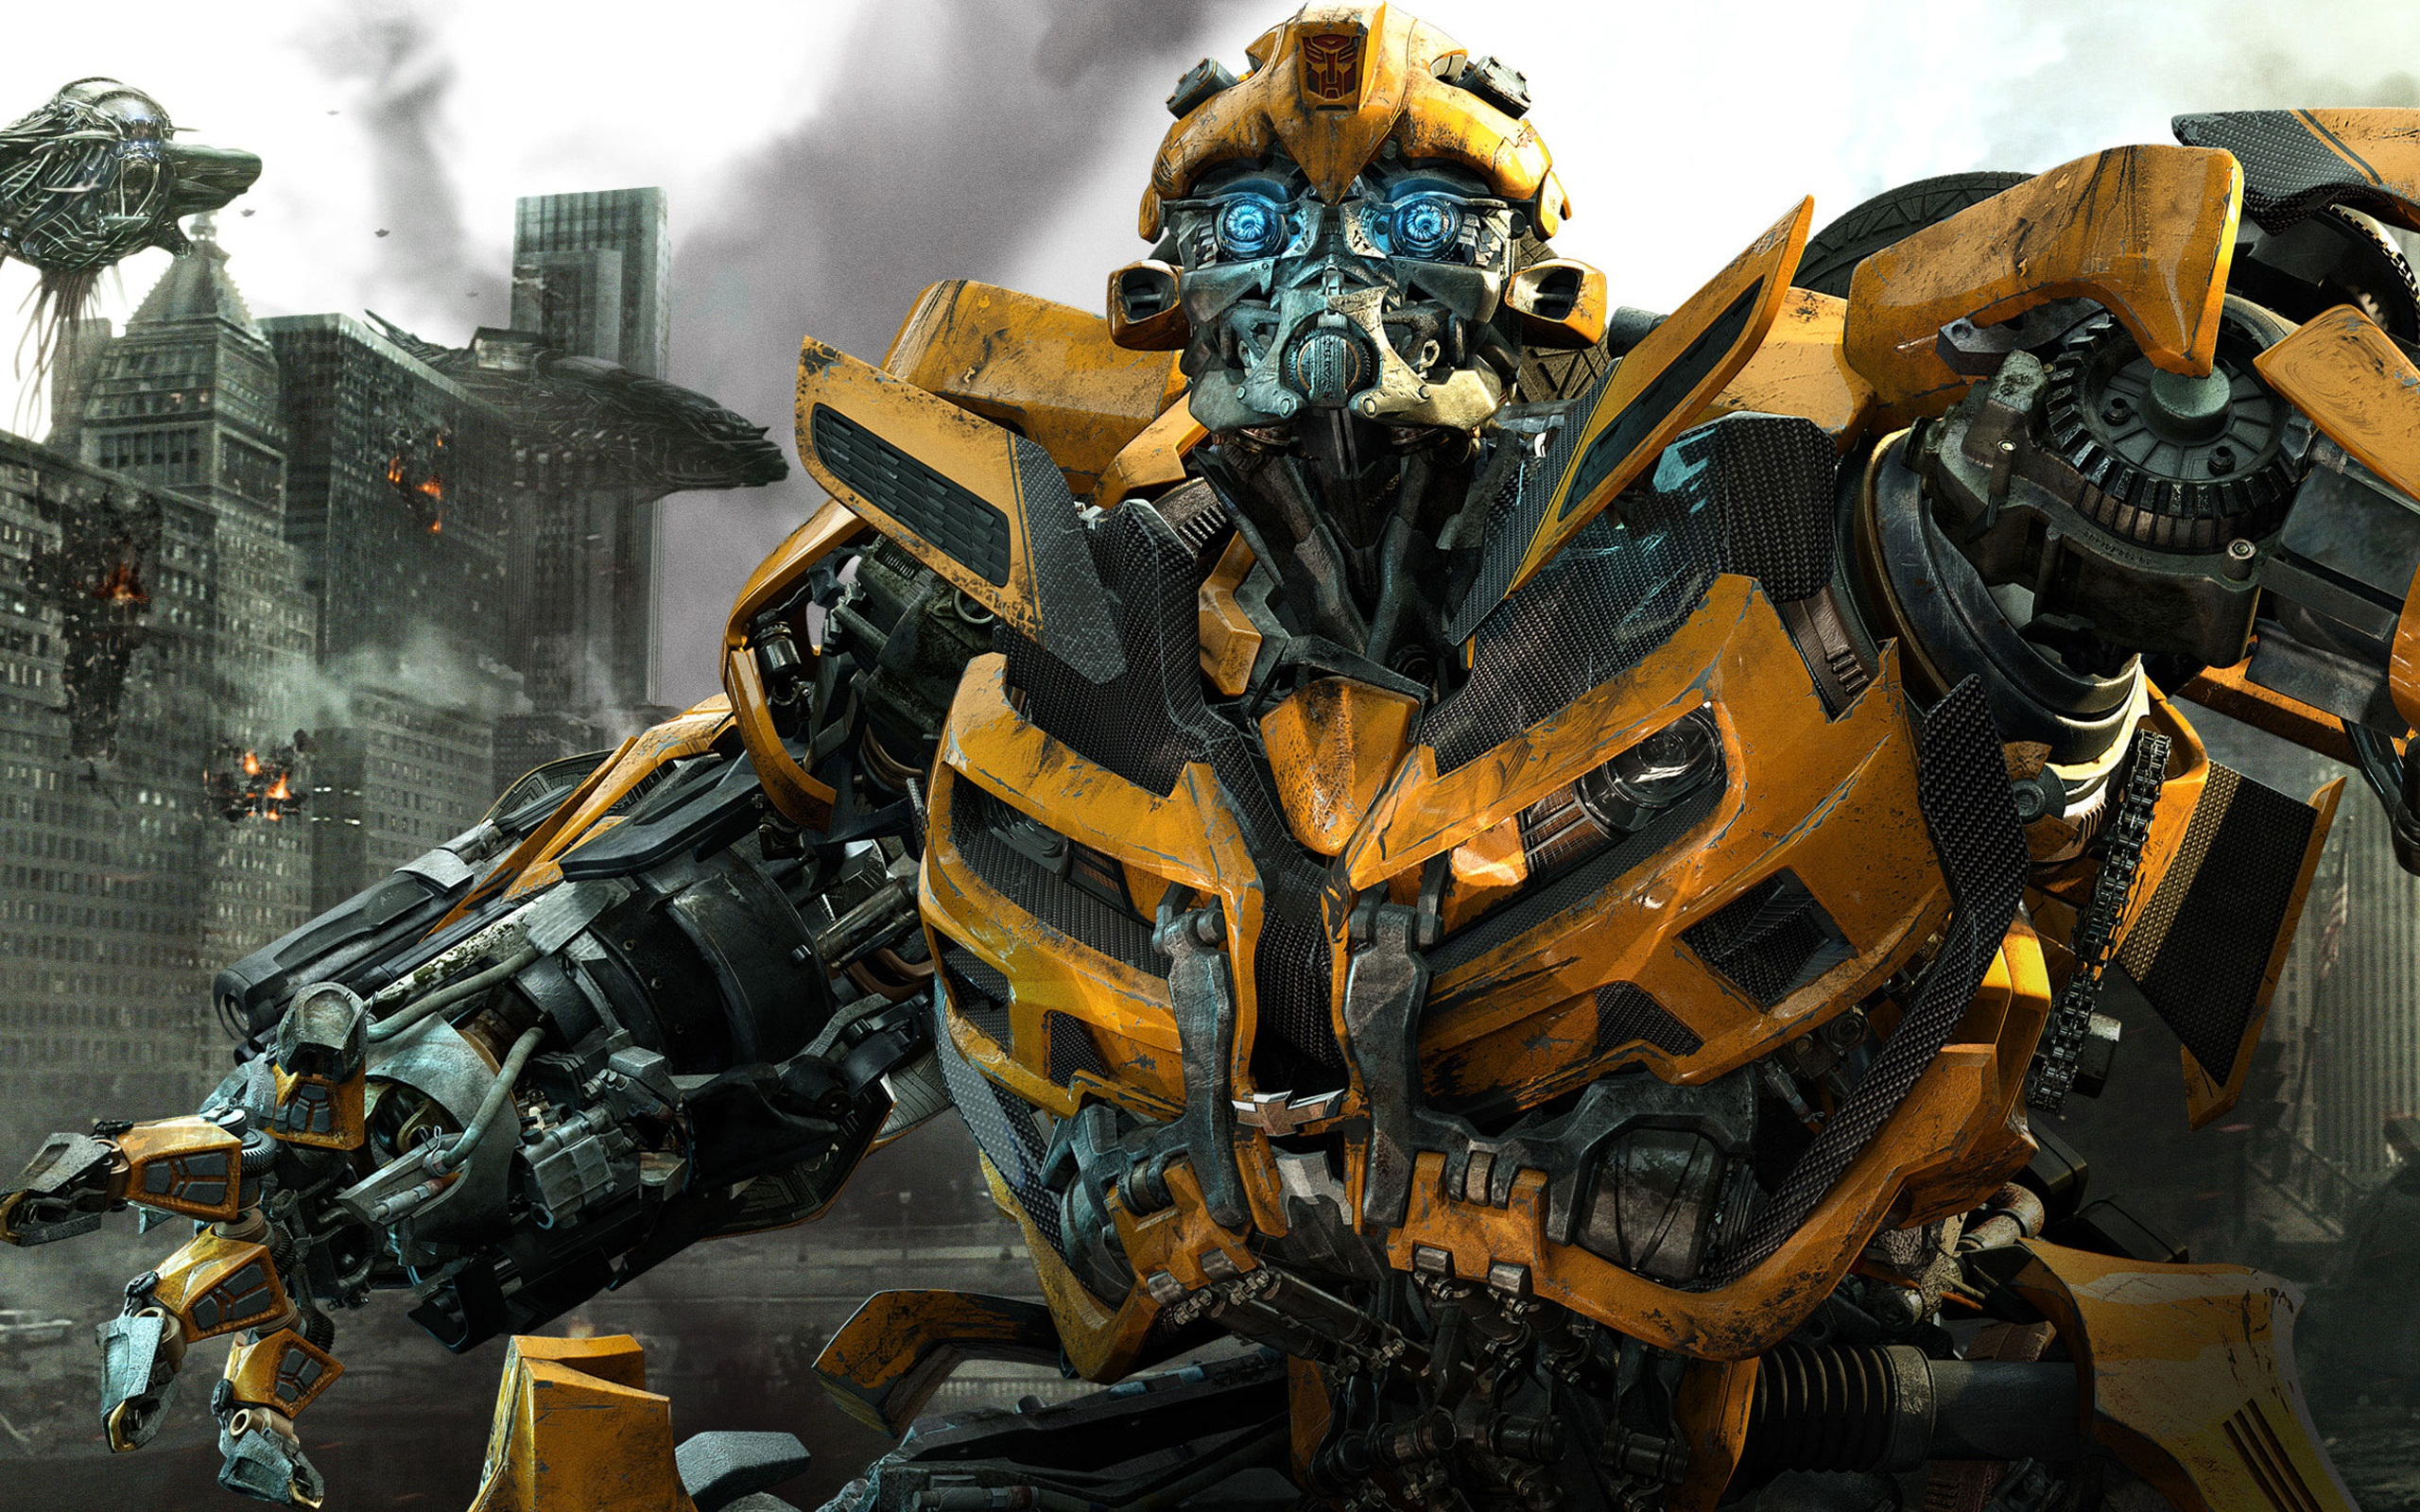 Bumblebee in Transformers 3 668.61 Kb